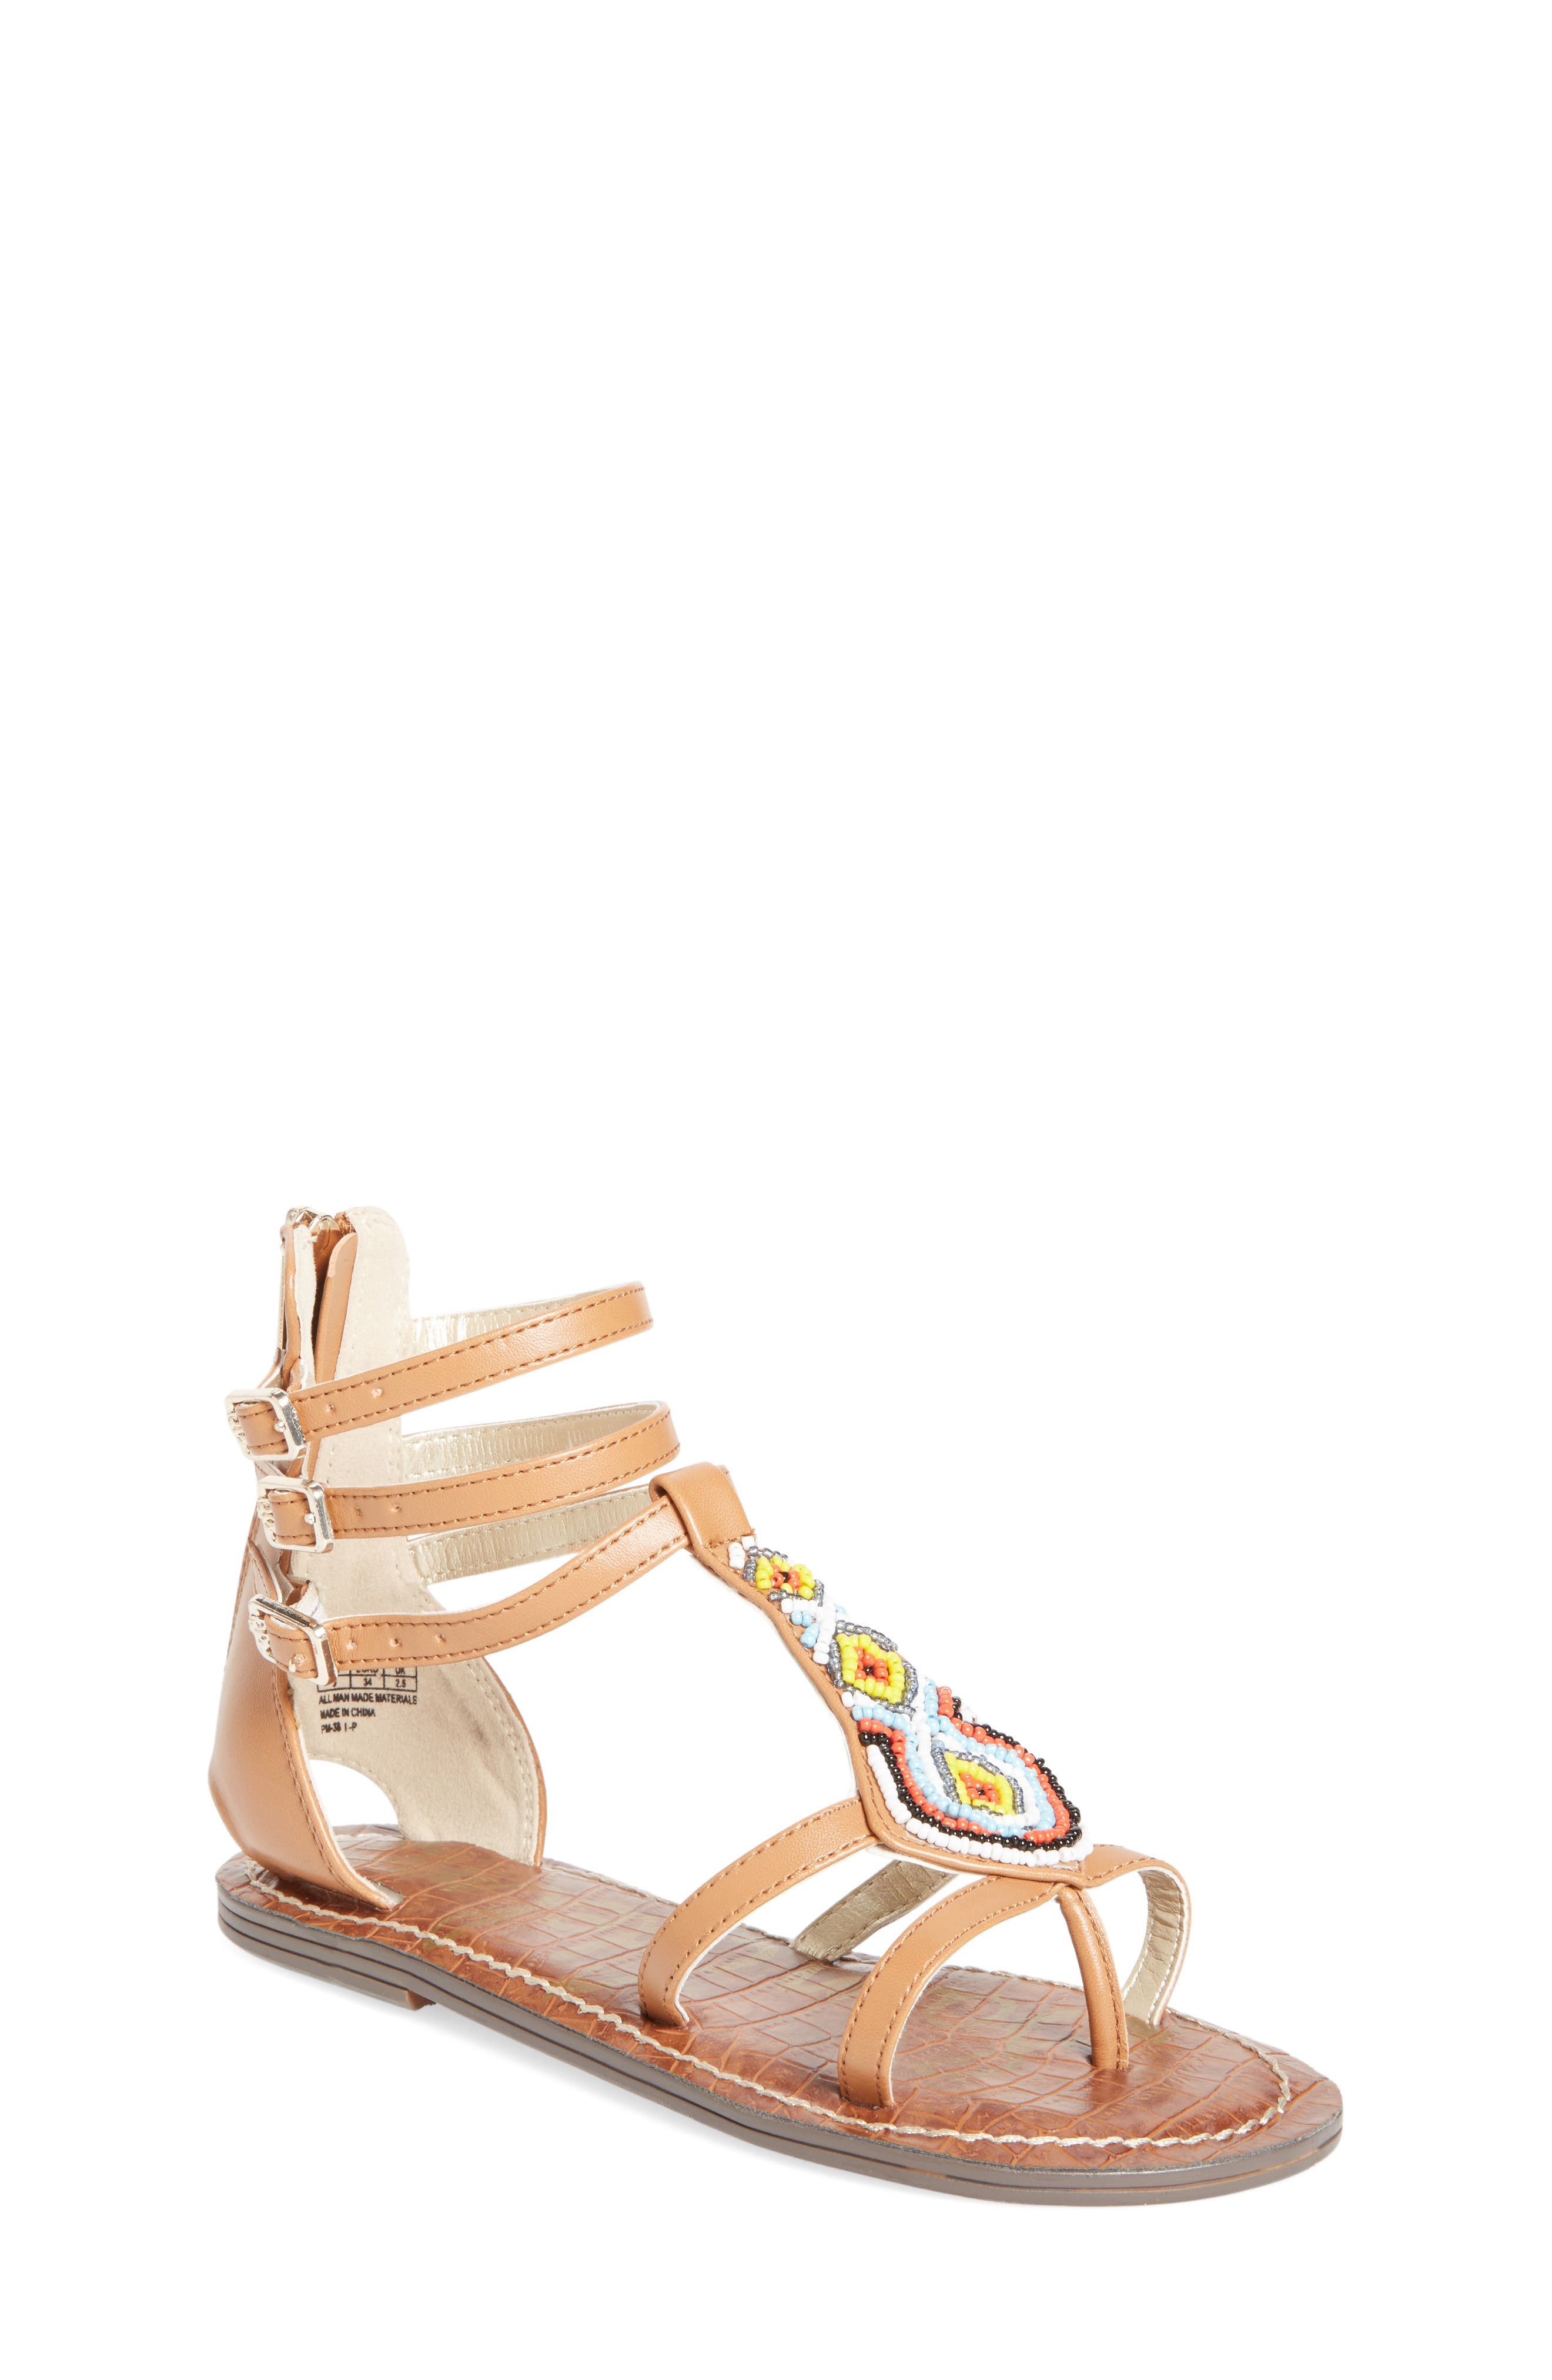 Sam Edelman Gigi Giselle Sandal (Toddler, Little Kid & Big Kid)